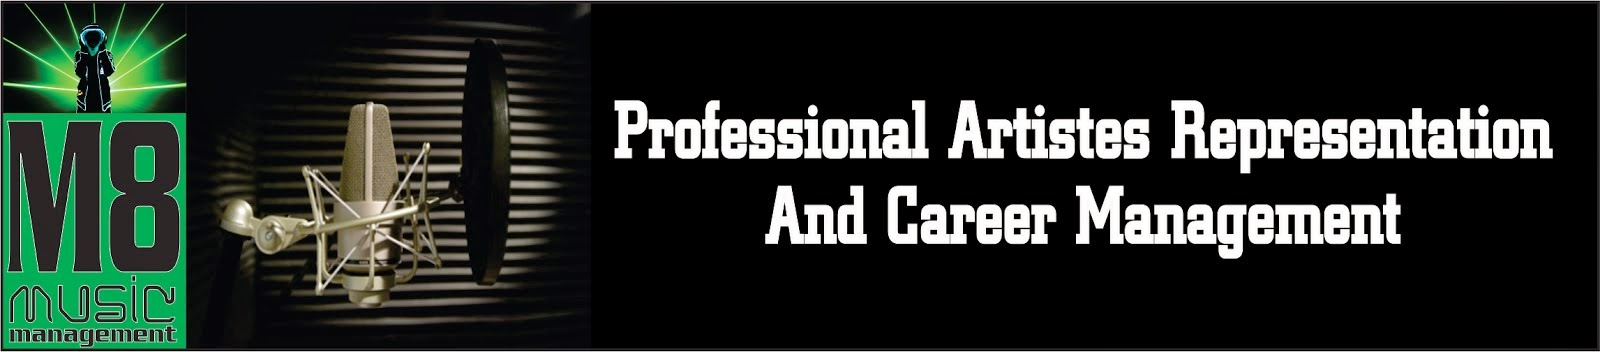 Professional Artistes Representation And Career Management